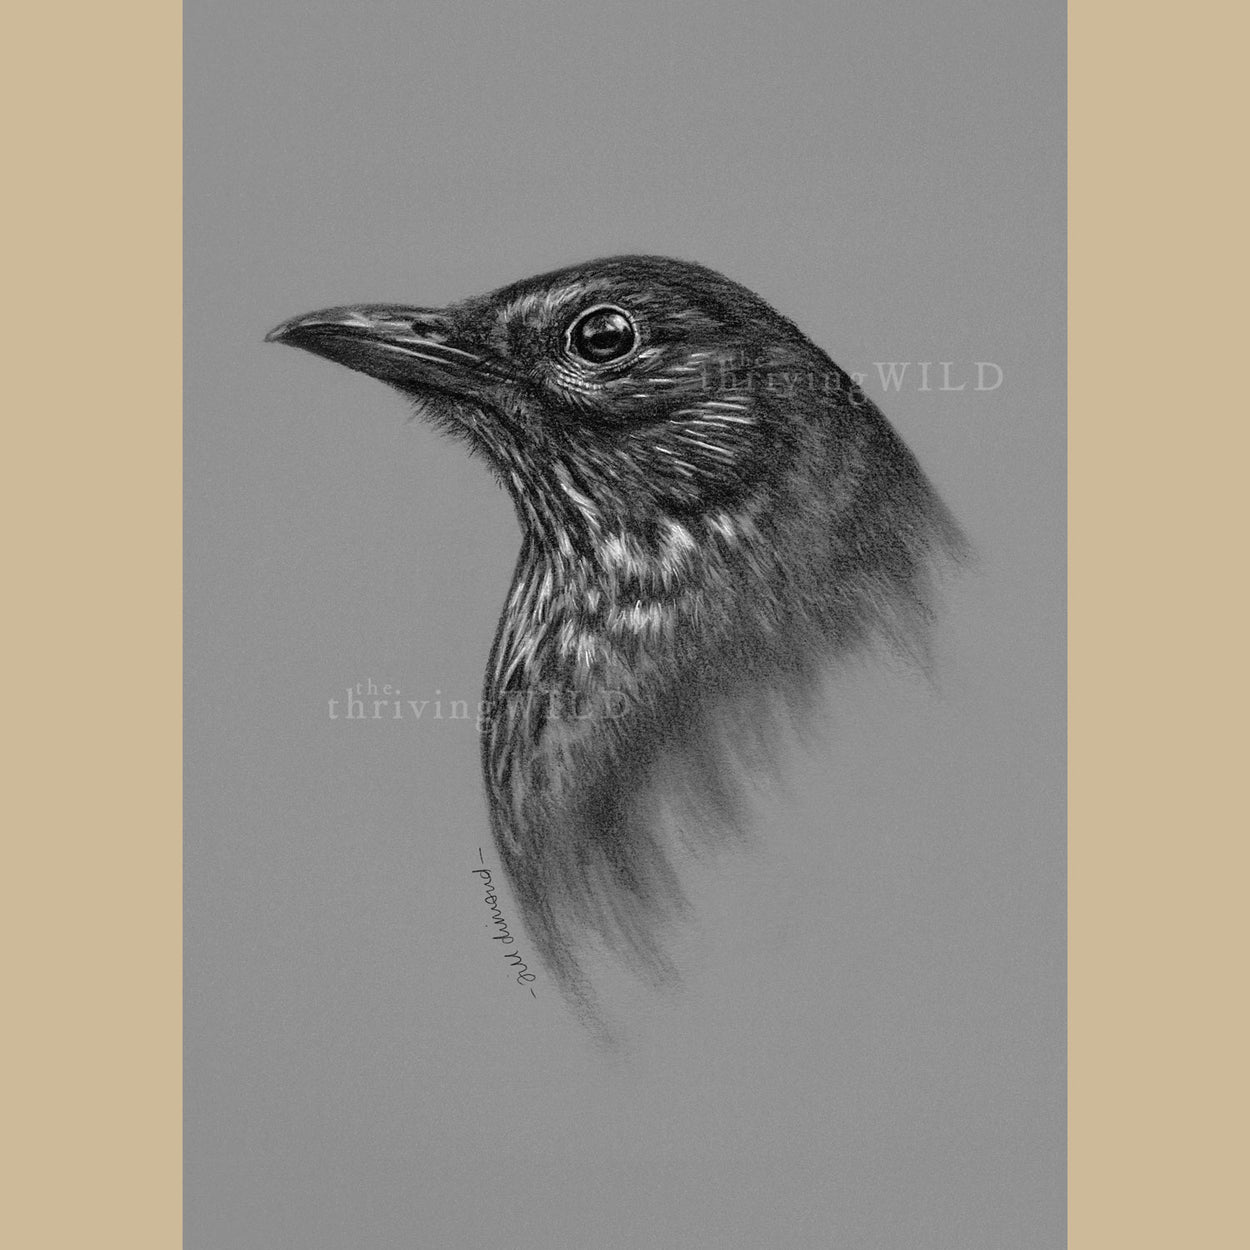 Female Blackbird Charcoal Drawing - The Thriving Wild - Jill Dimond